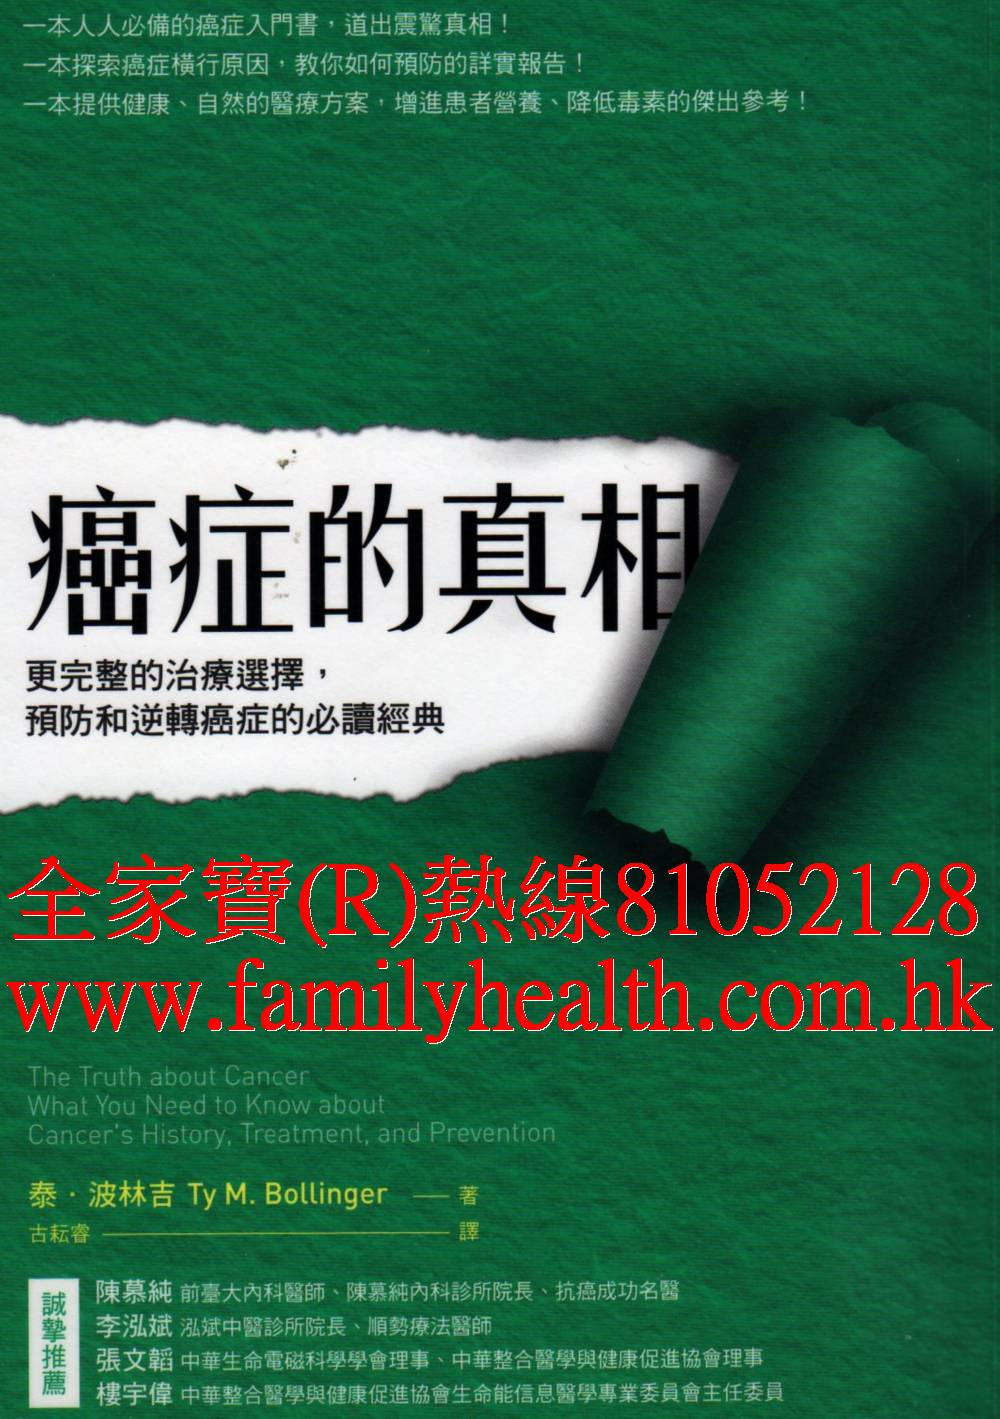 http://www.familyhealth.com.hk/files/full/913_0.jpg